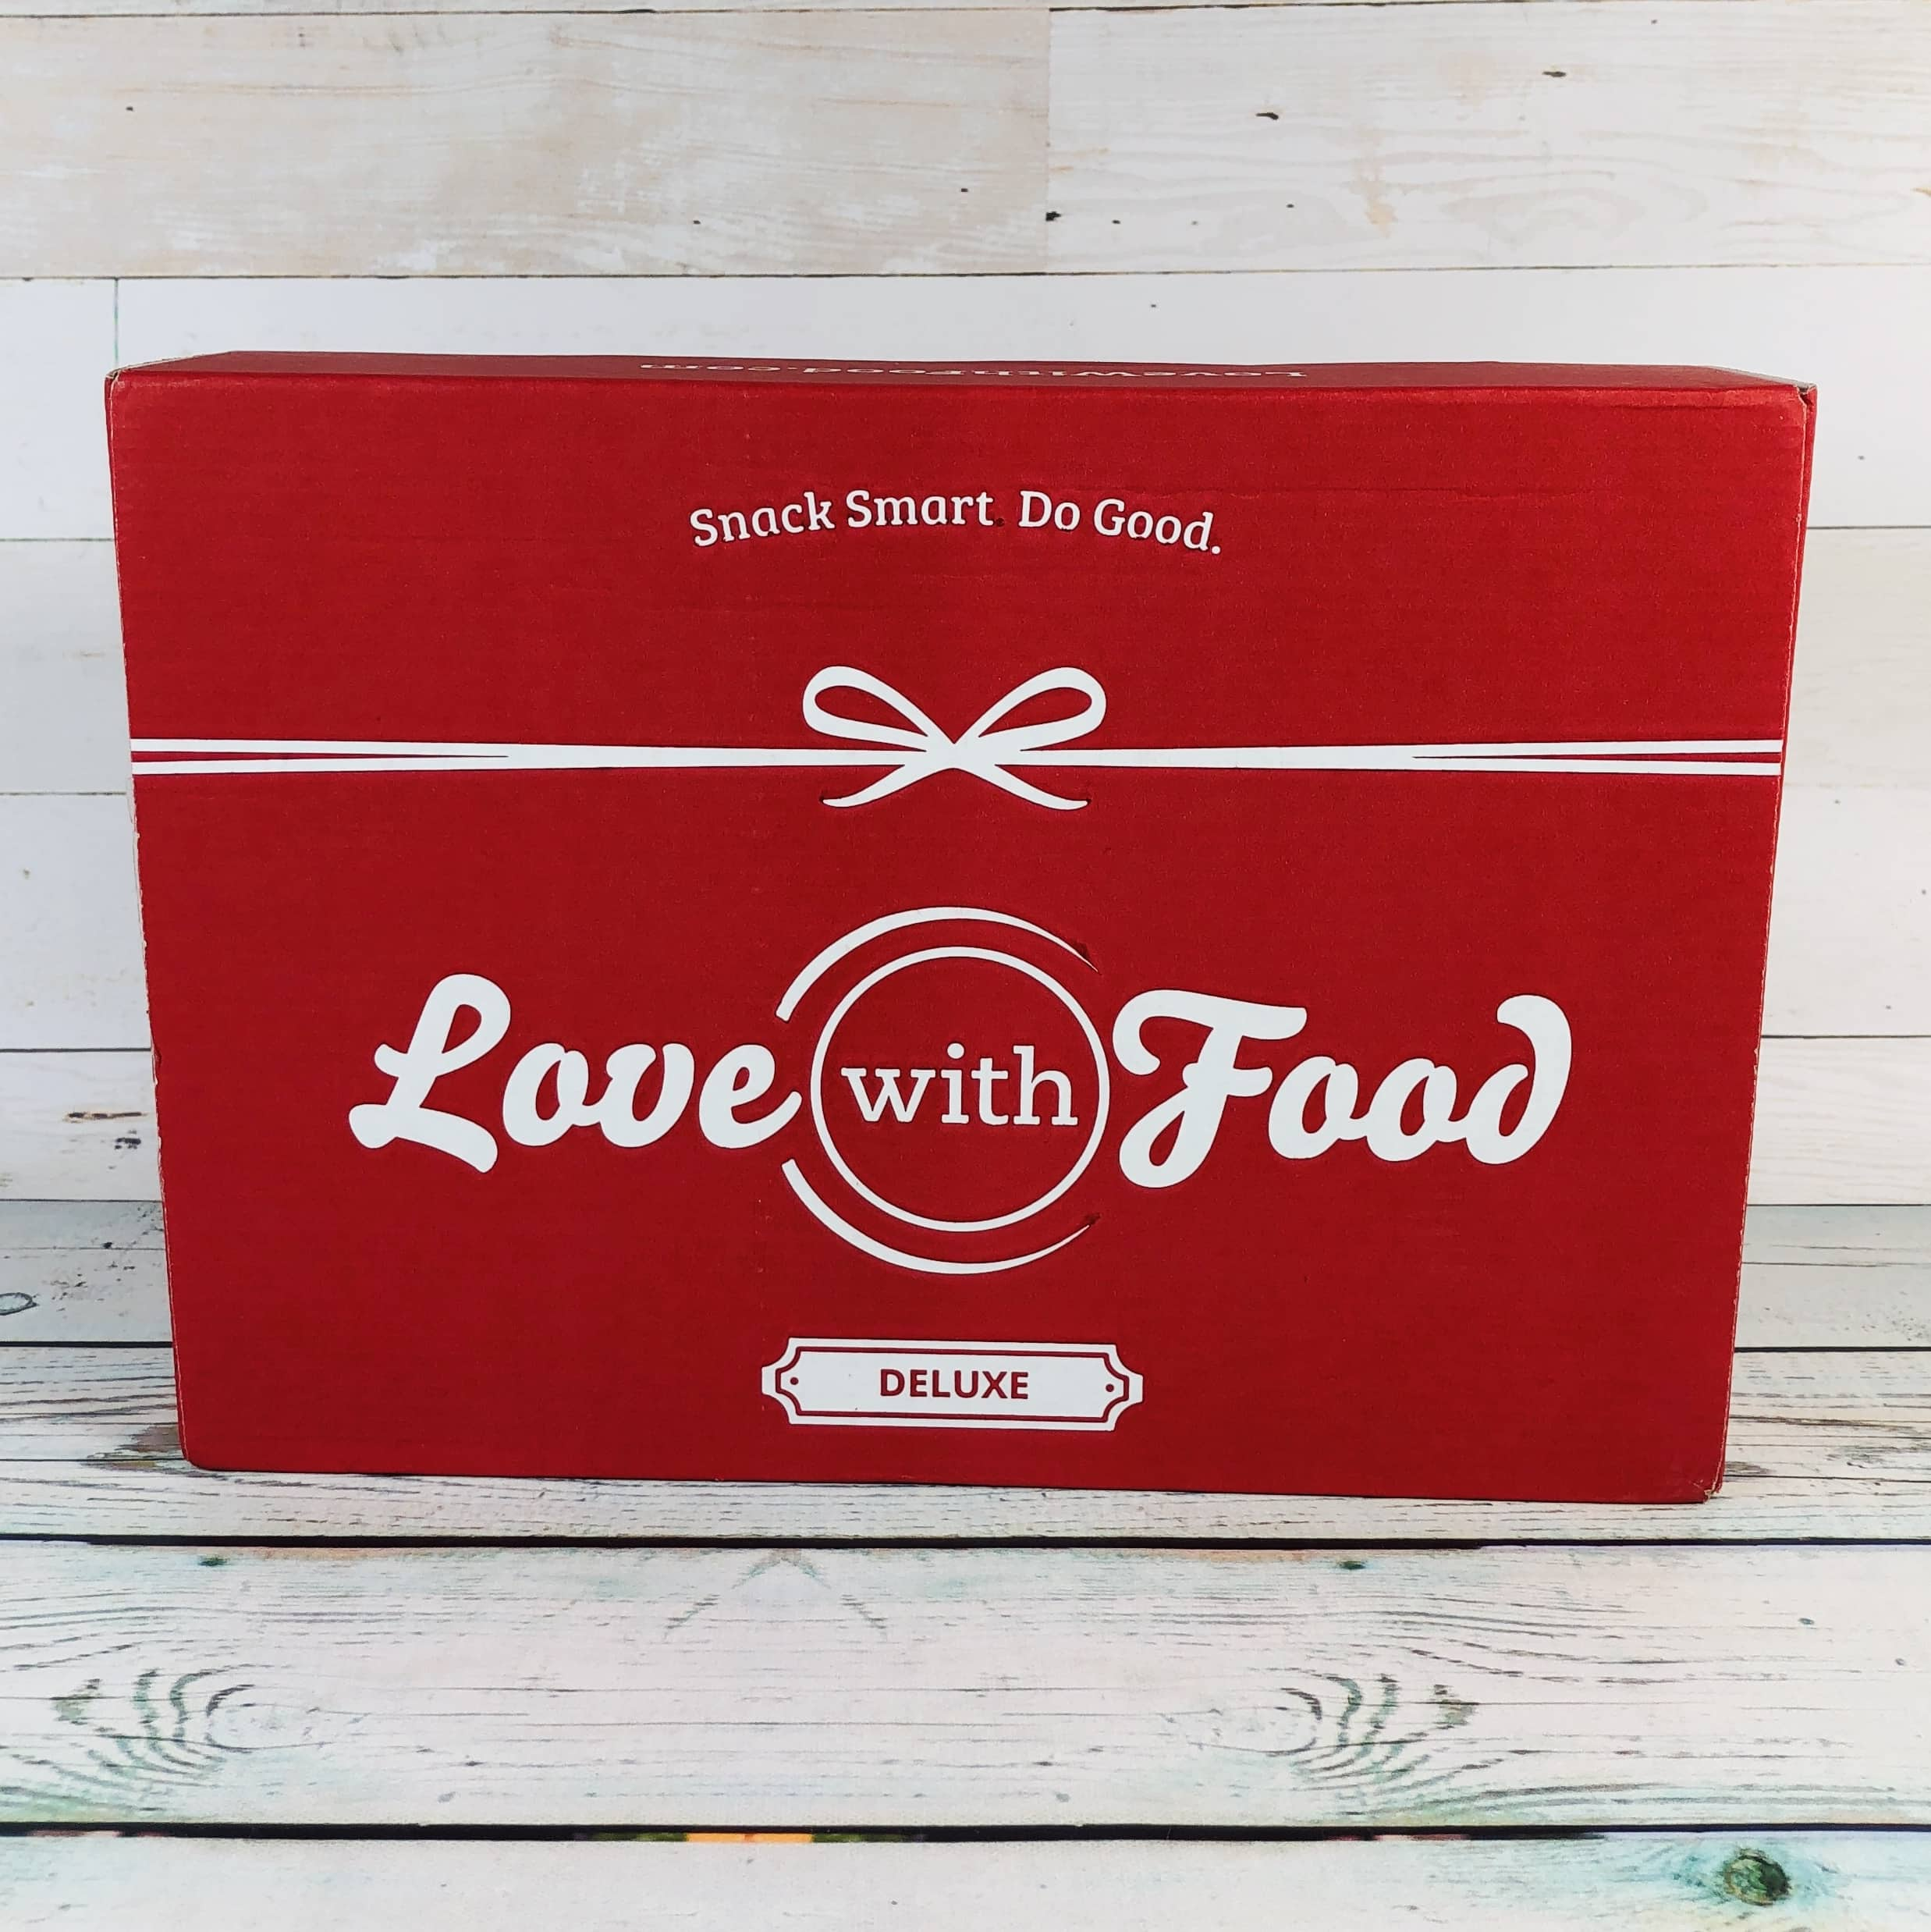 Love With Food April 2019 Deluxe Box Review + Coupon!